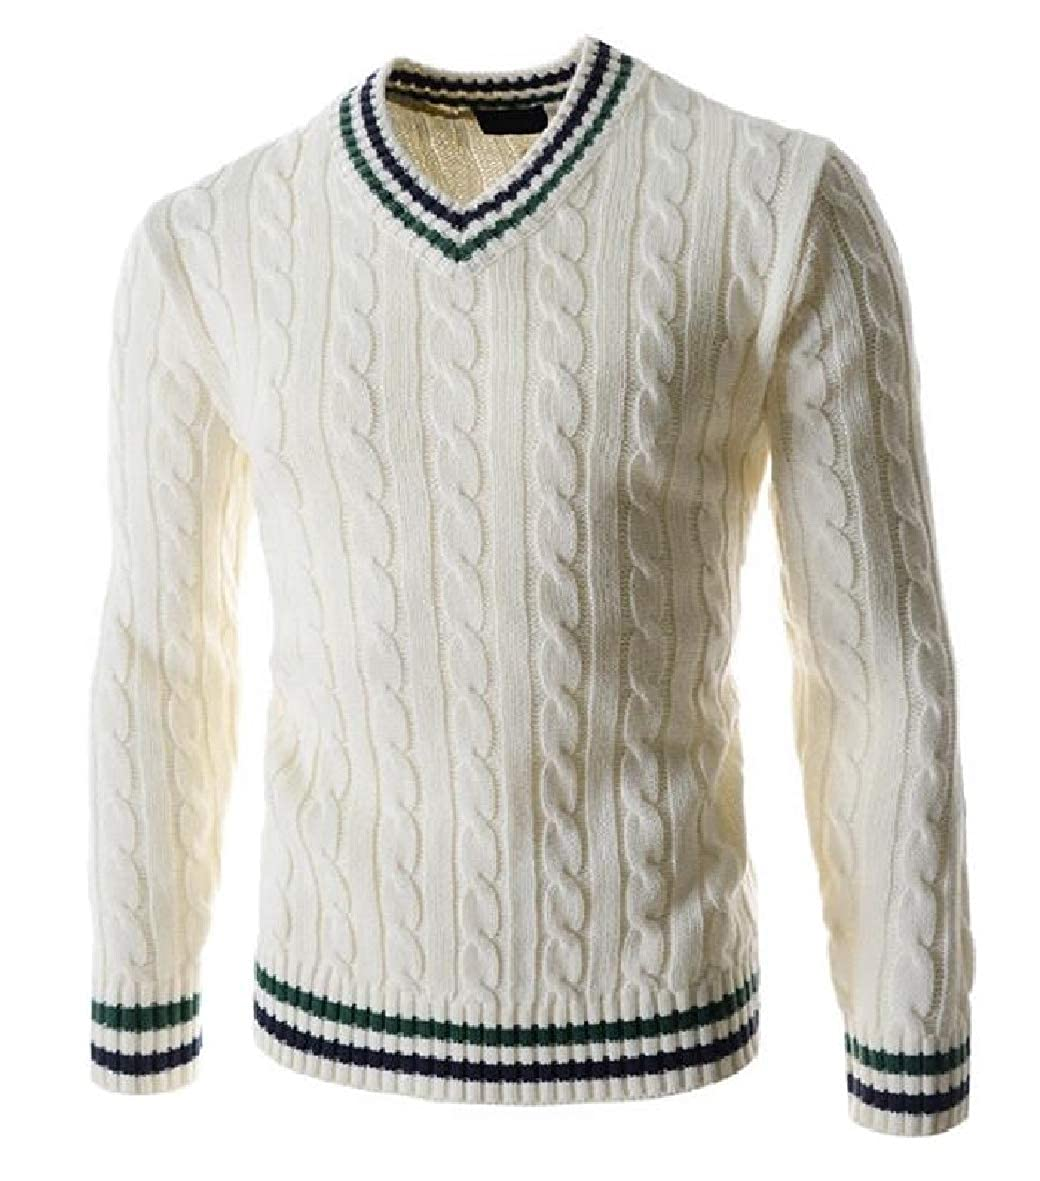 Tootless-Men Marled Cable Pullover Outwear Long-Sleeve Knitted V Neck Knitting Sweaters